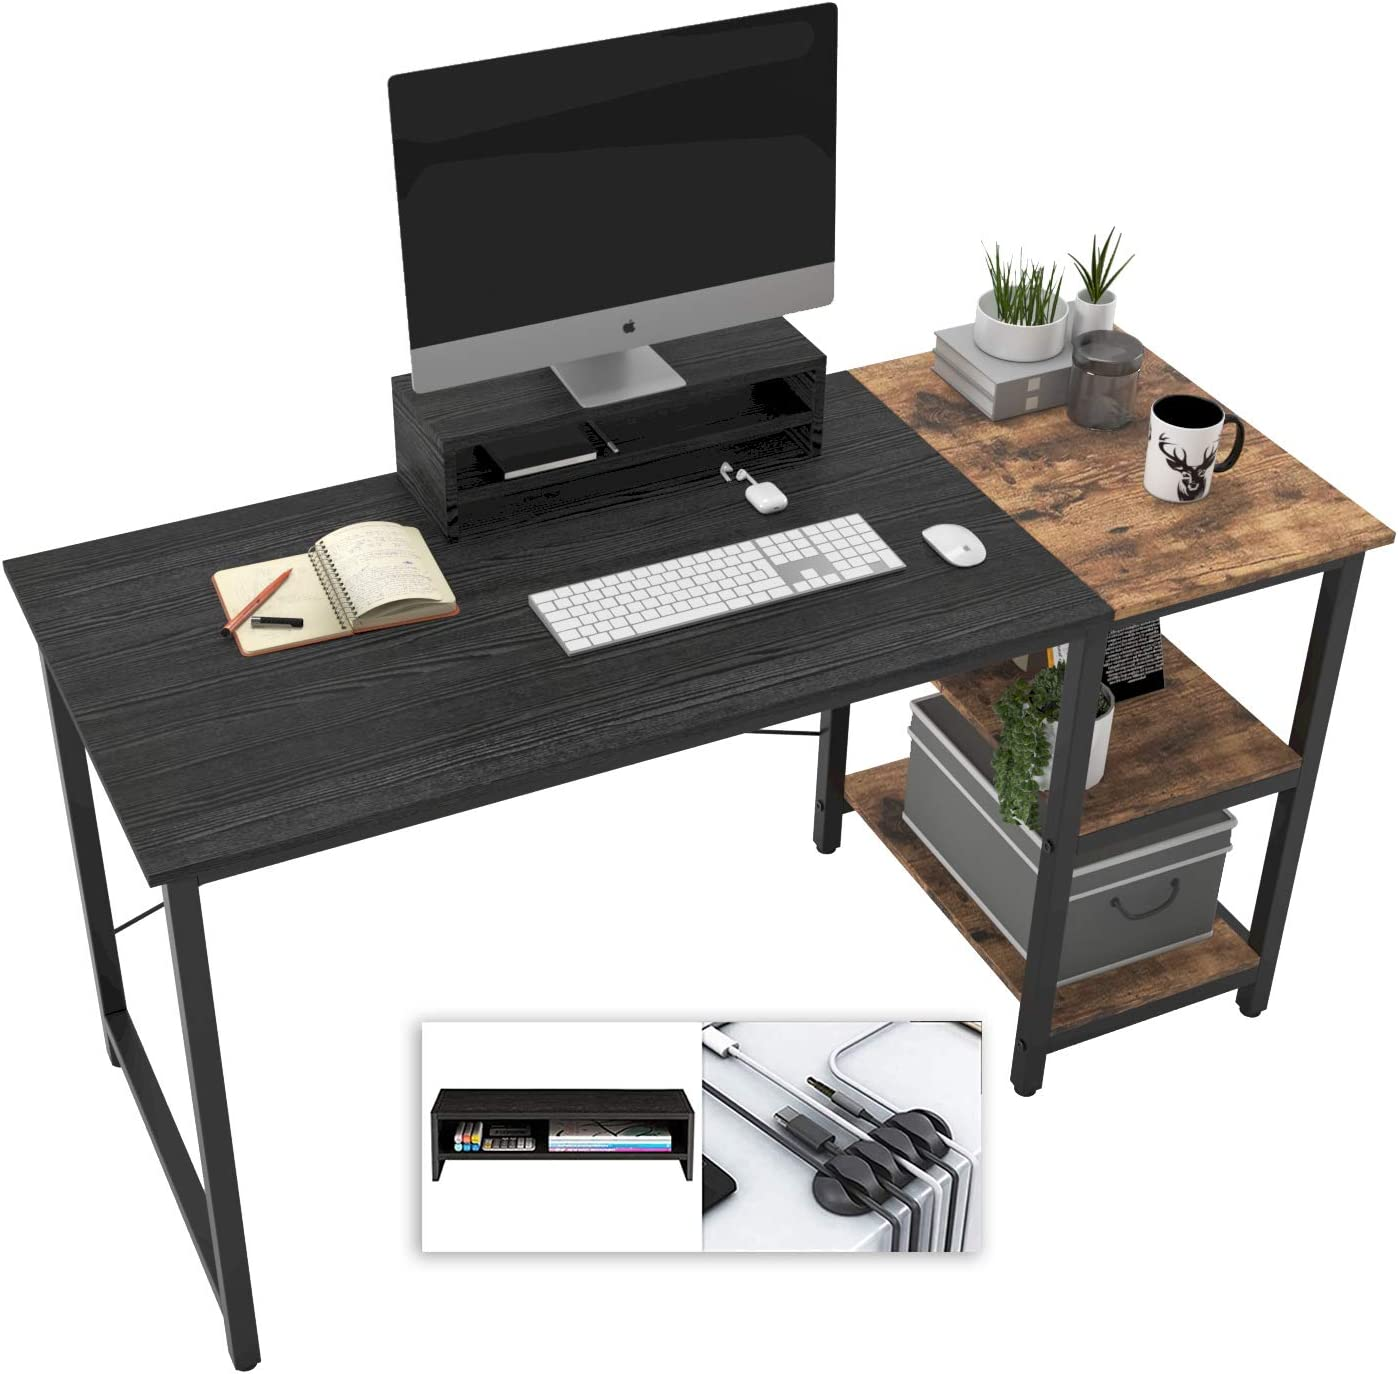 Computer Desk Ranking TOP1 with Shelves for Home Writing Office Study Ta Cheap mail order sales 55